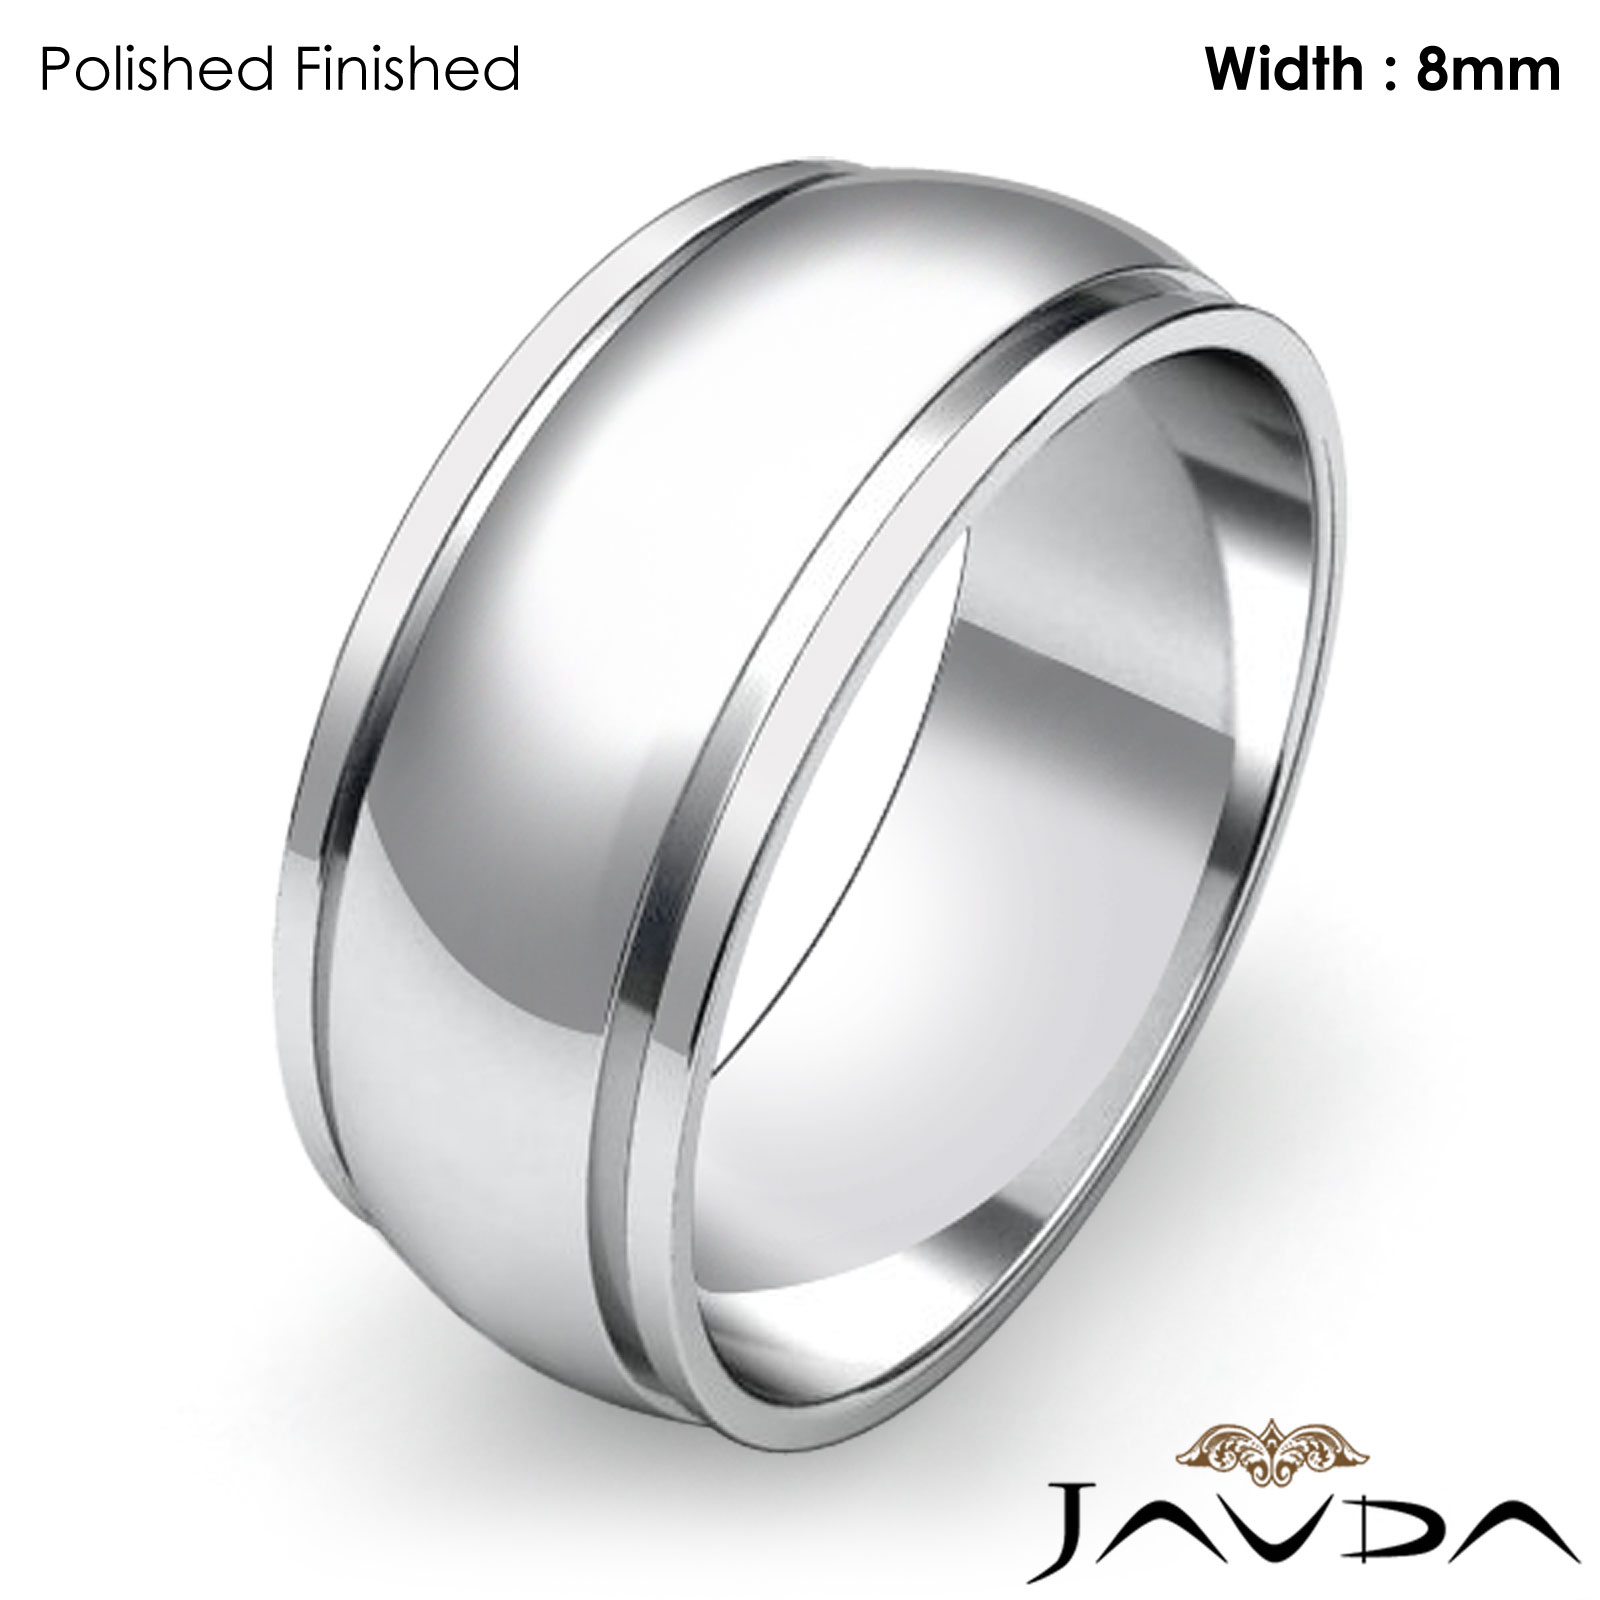 Wedding Band Women Plain Solid Dome Step Ring 8mm 14k White Gold 64gm Sz 6 675